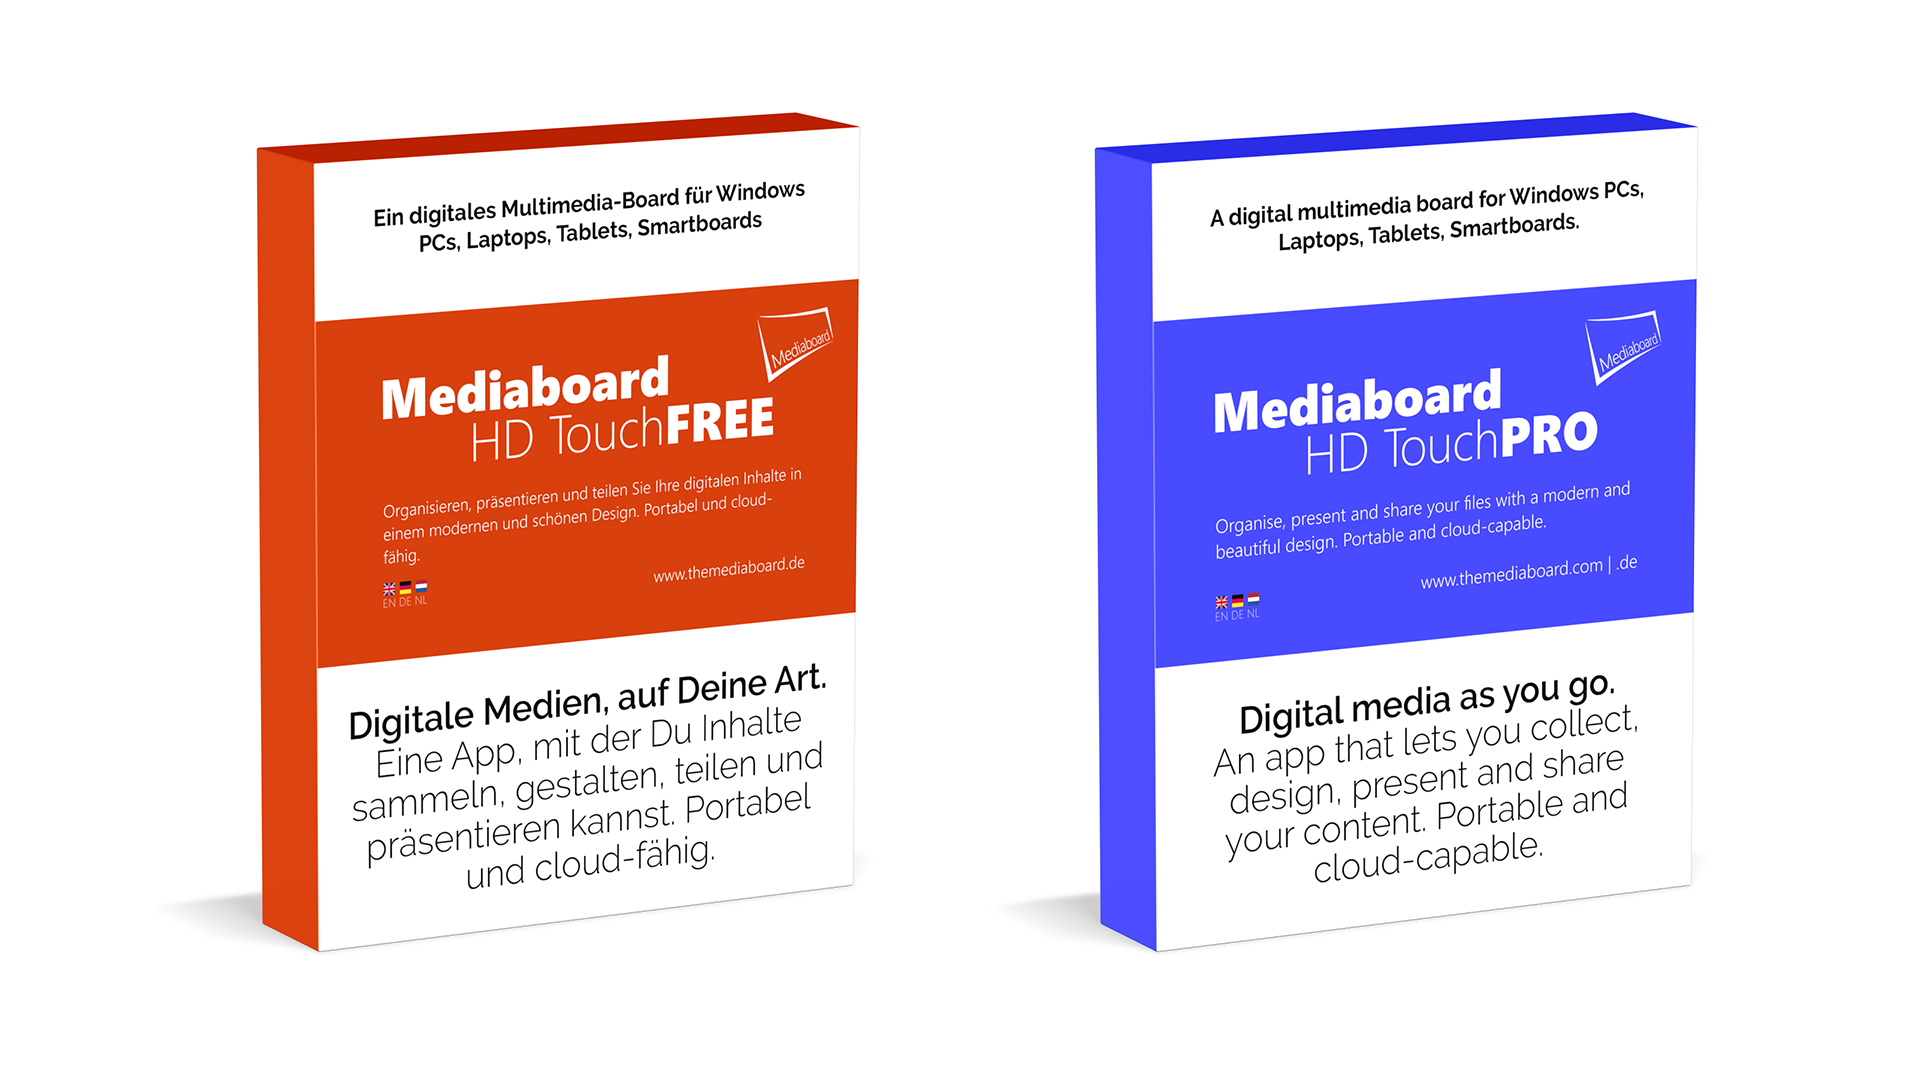 mediaboard boxshot mockups FREE and PRO DE 1920x1080 - About The Developer - André Gansel, IT Enthusiast